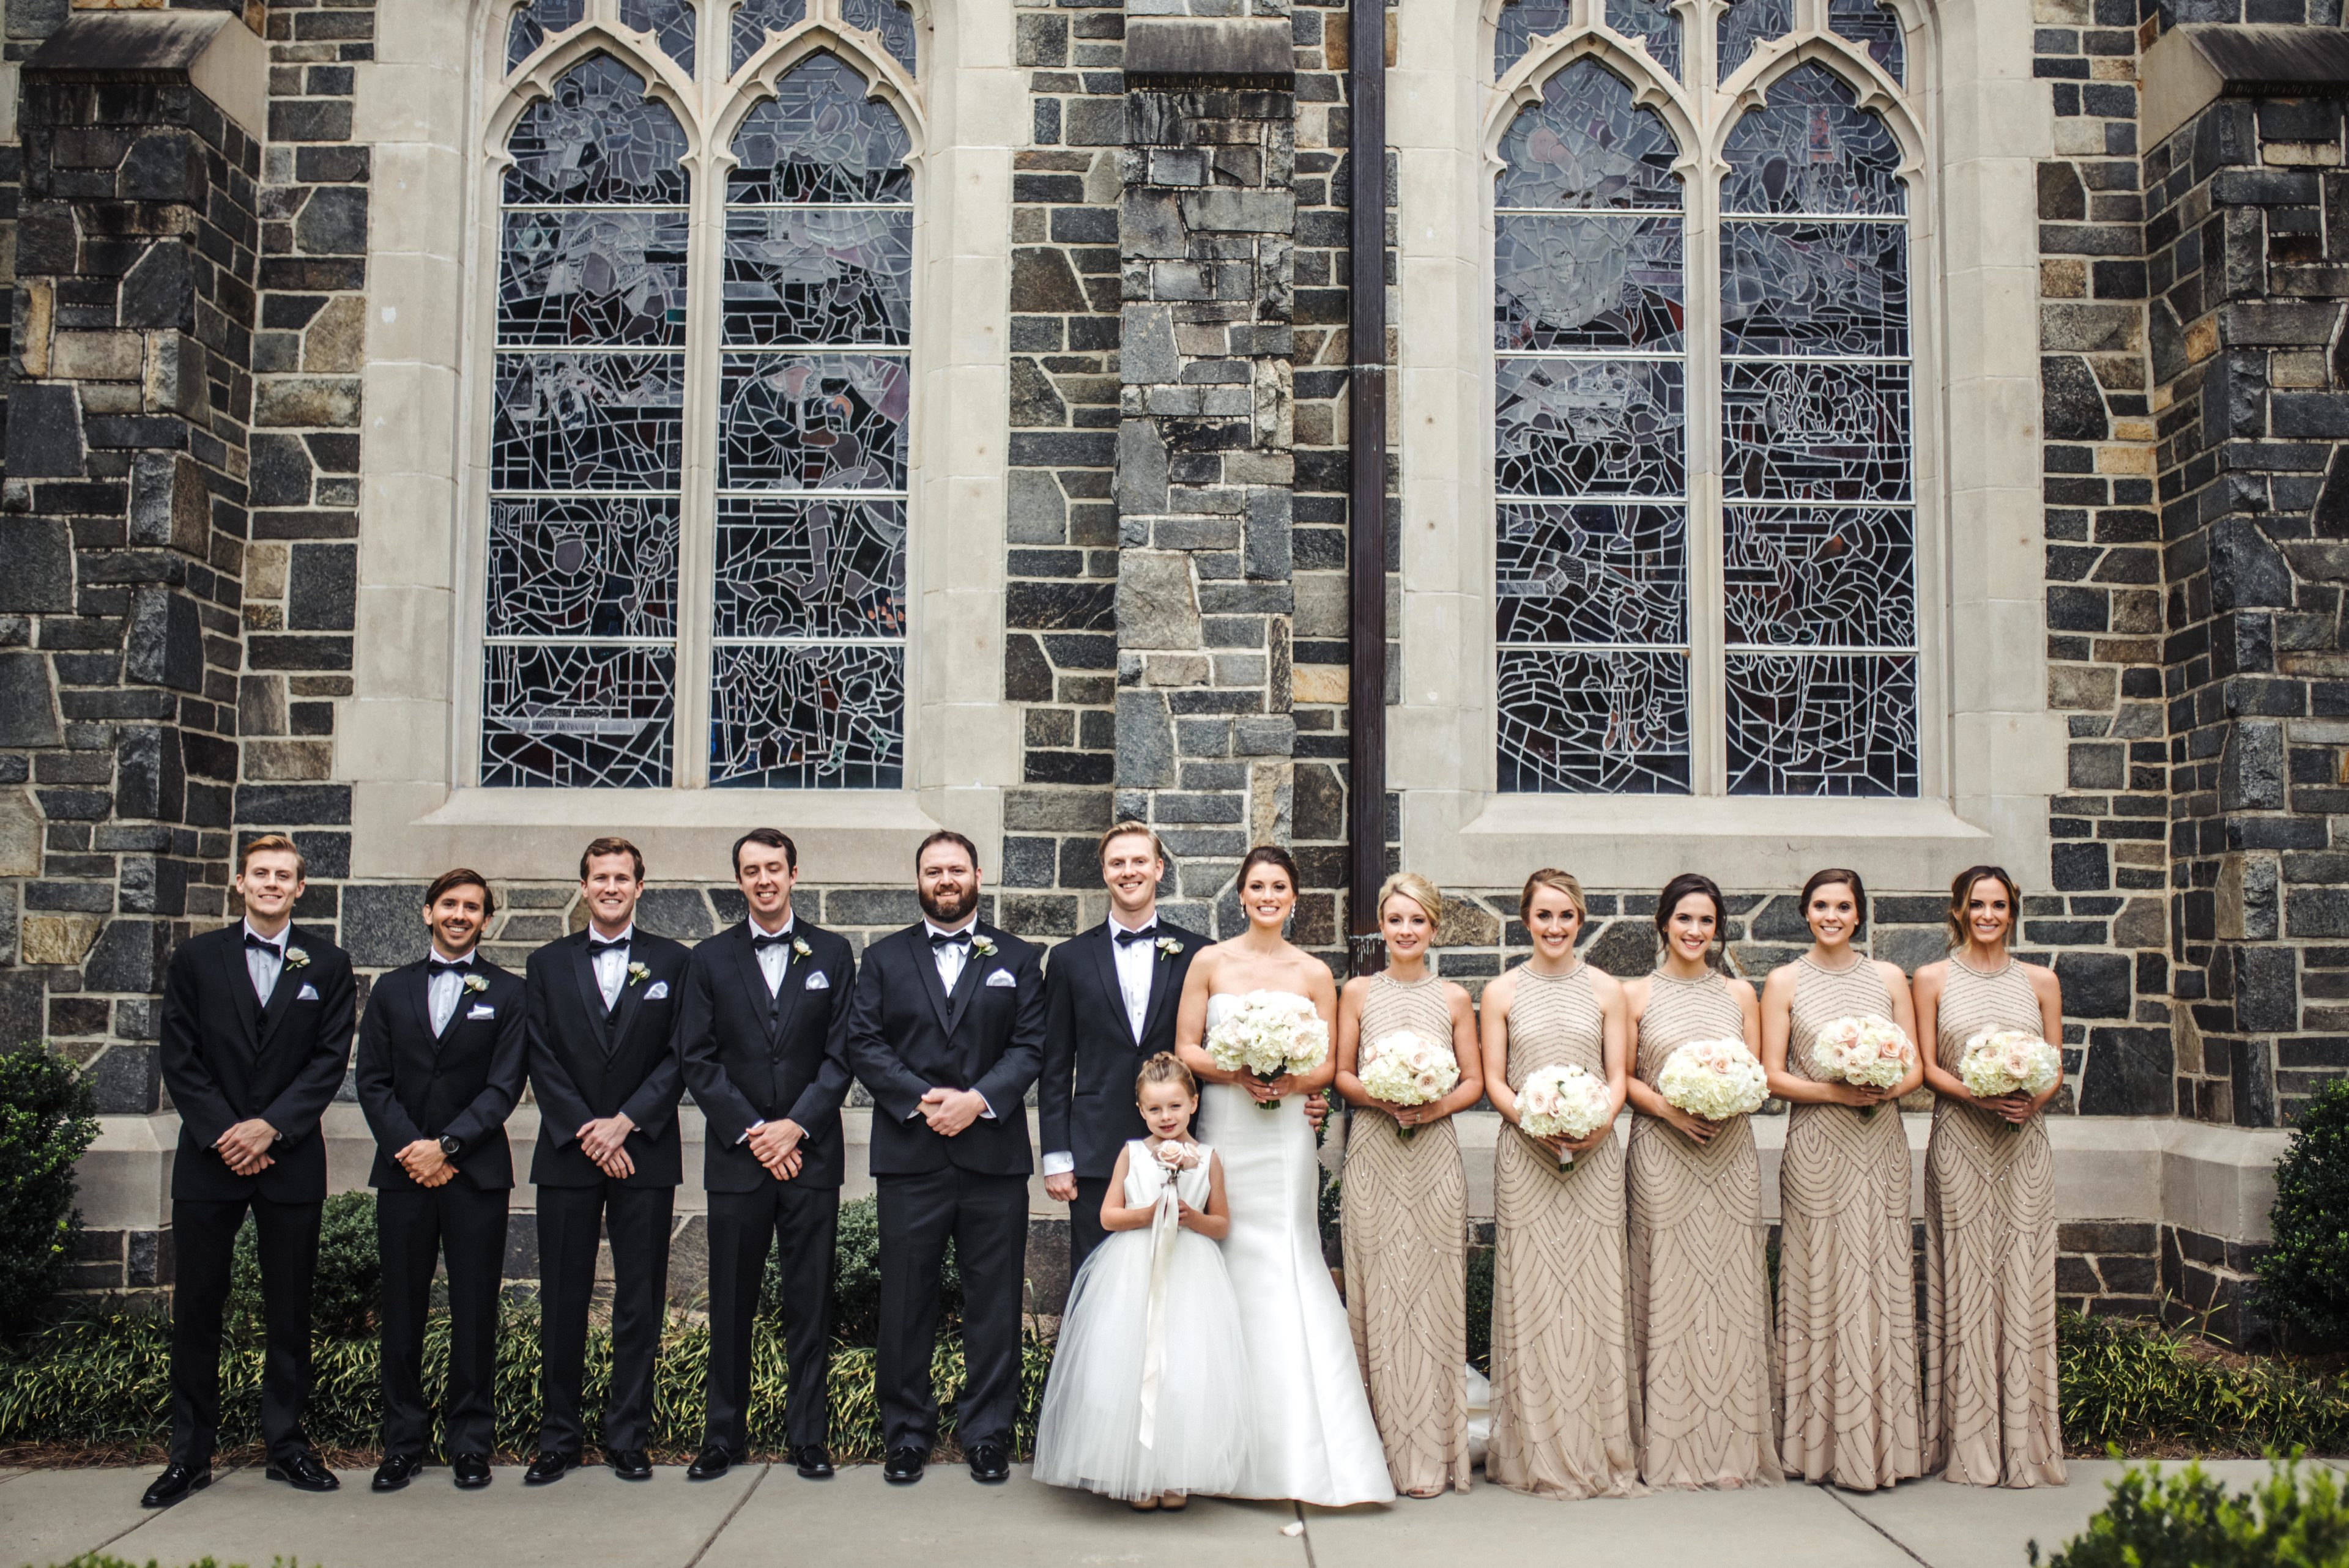 Bridal Party photo shwoing groomsmen and bridesmaids wearing stunning gold bridesmaids dresses with sequin accent